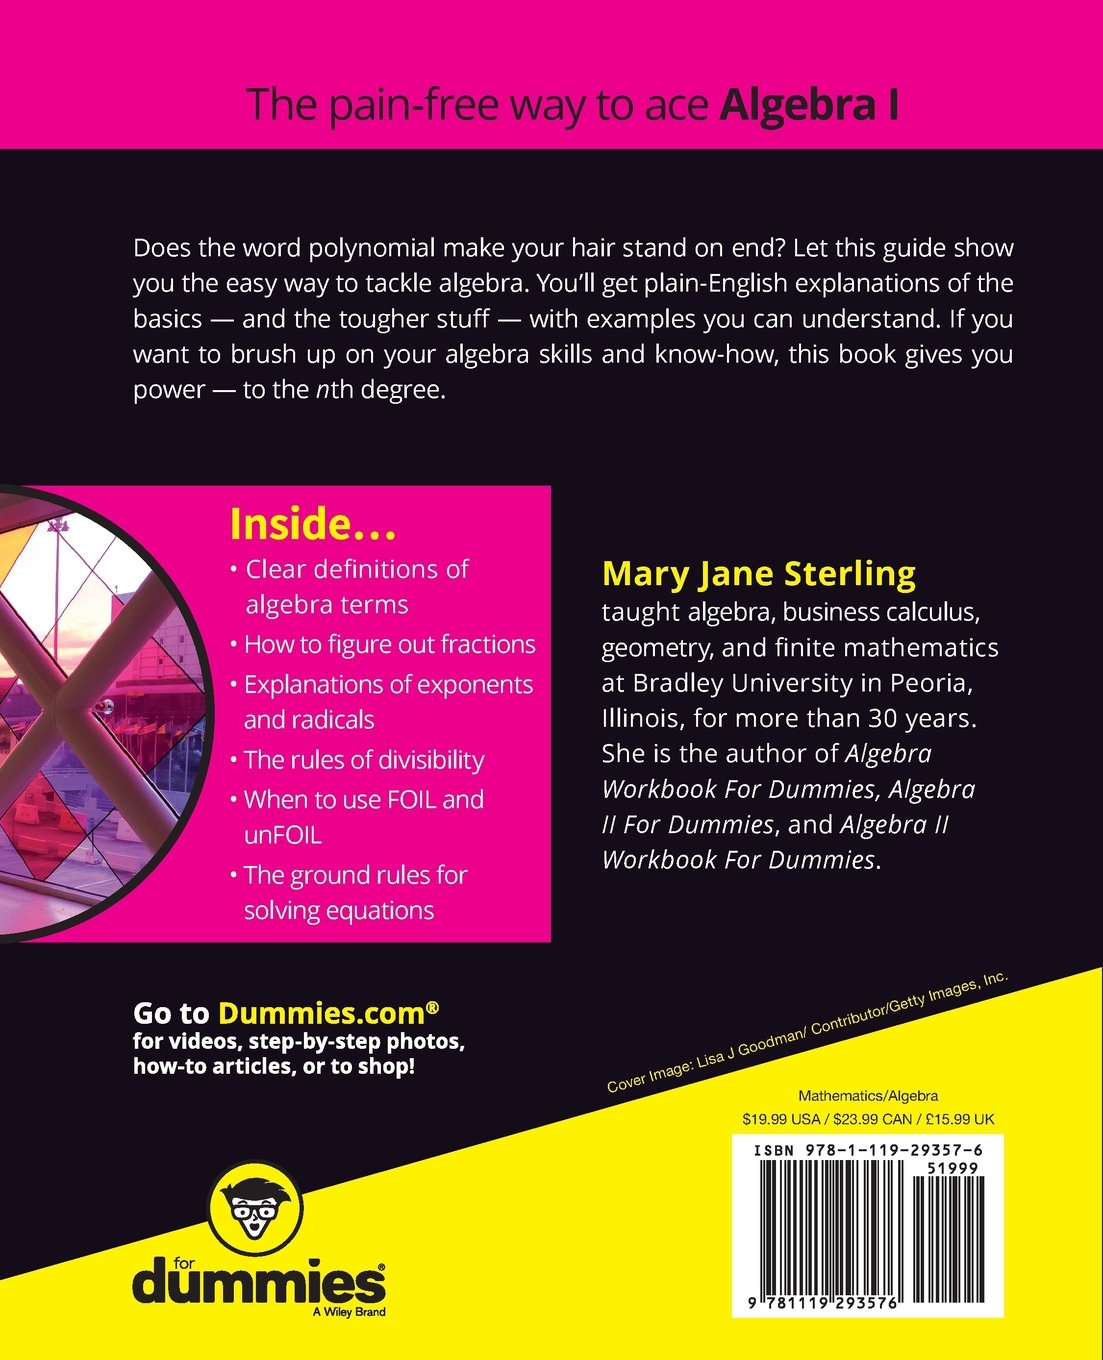 Algebra I For Dummies: Mary Jane Sterling: 9781119293576: Books  Amazon